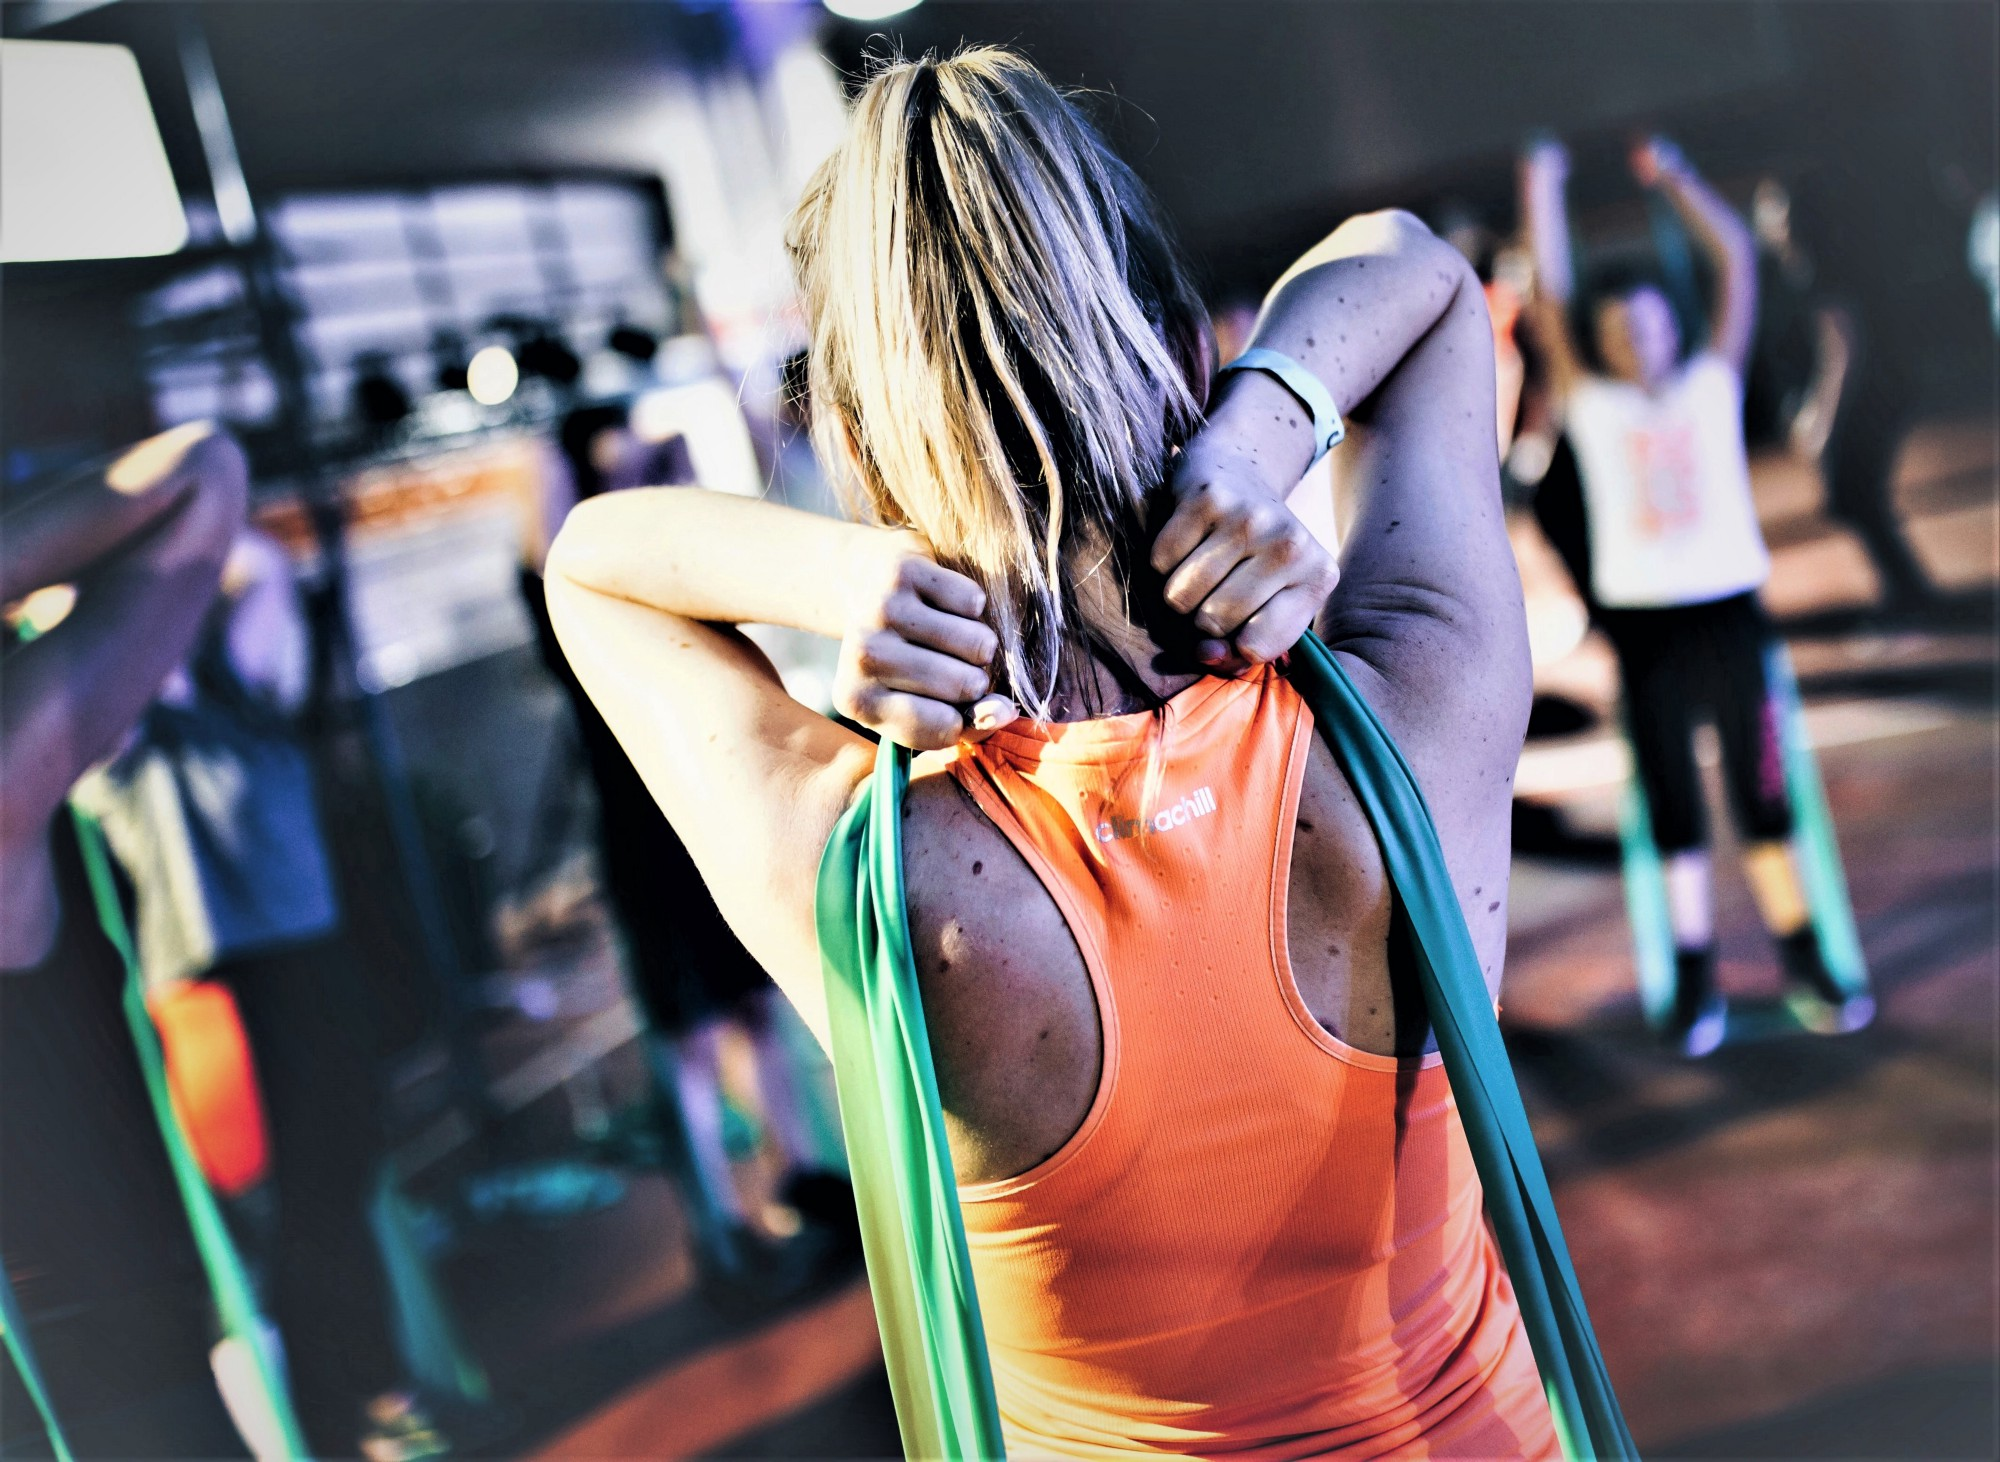 girl with blonde hair in ponytail wearing sleeveless orange top working out at gym with stretch bands